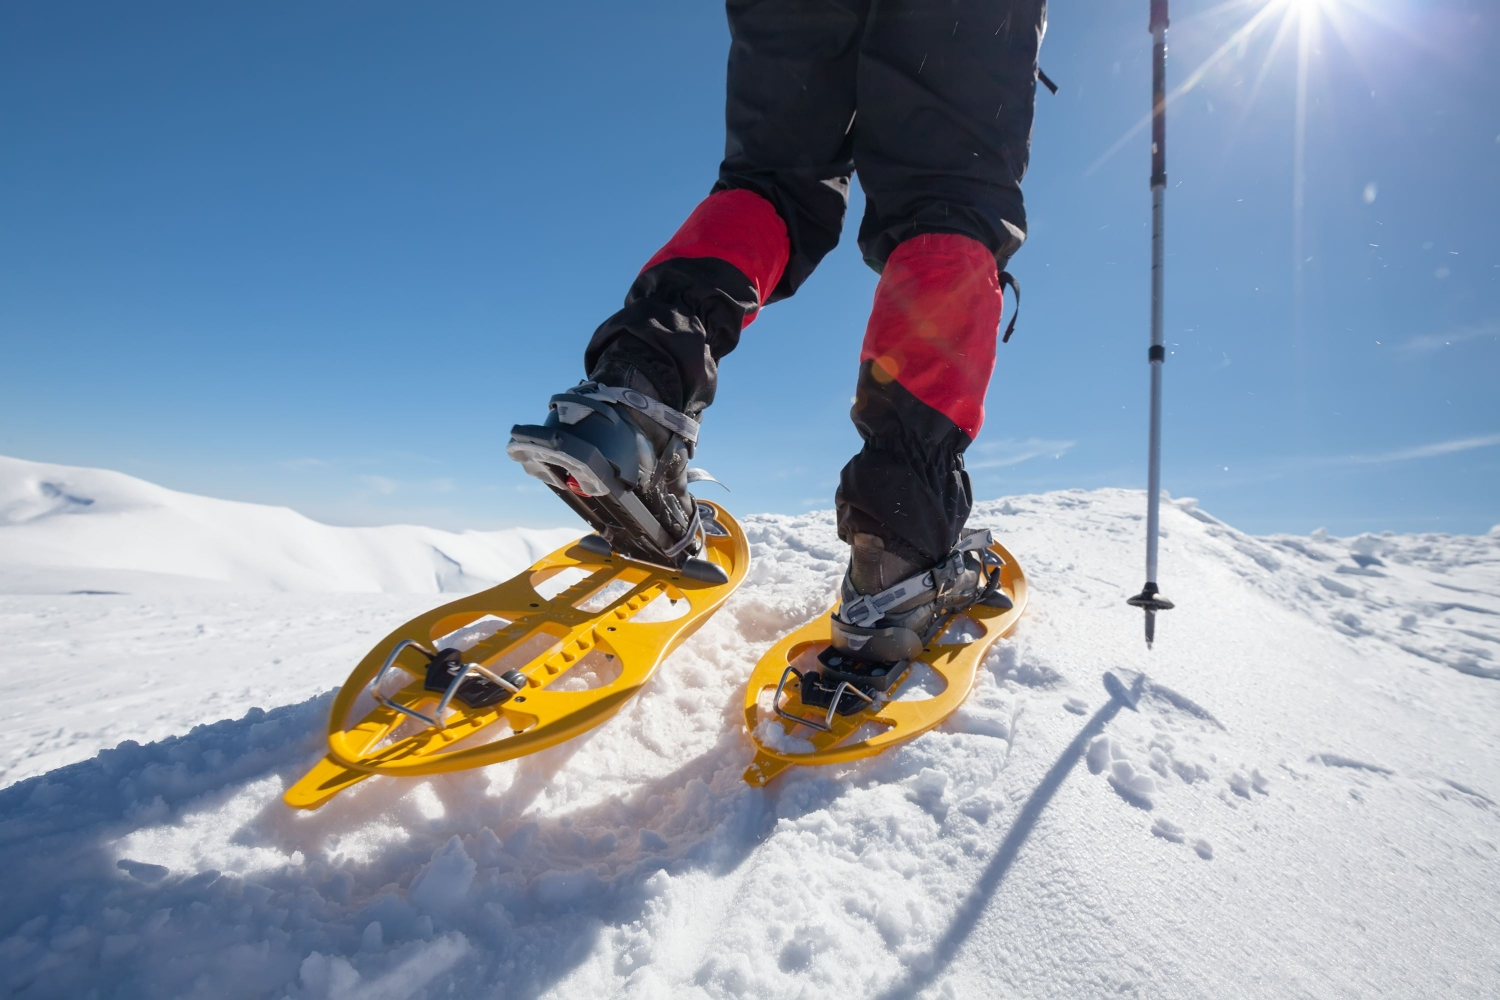 A persons feet with snowshoes on, sun in the background